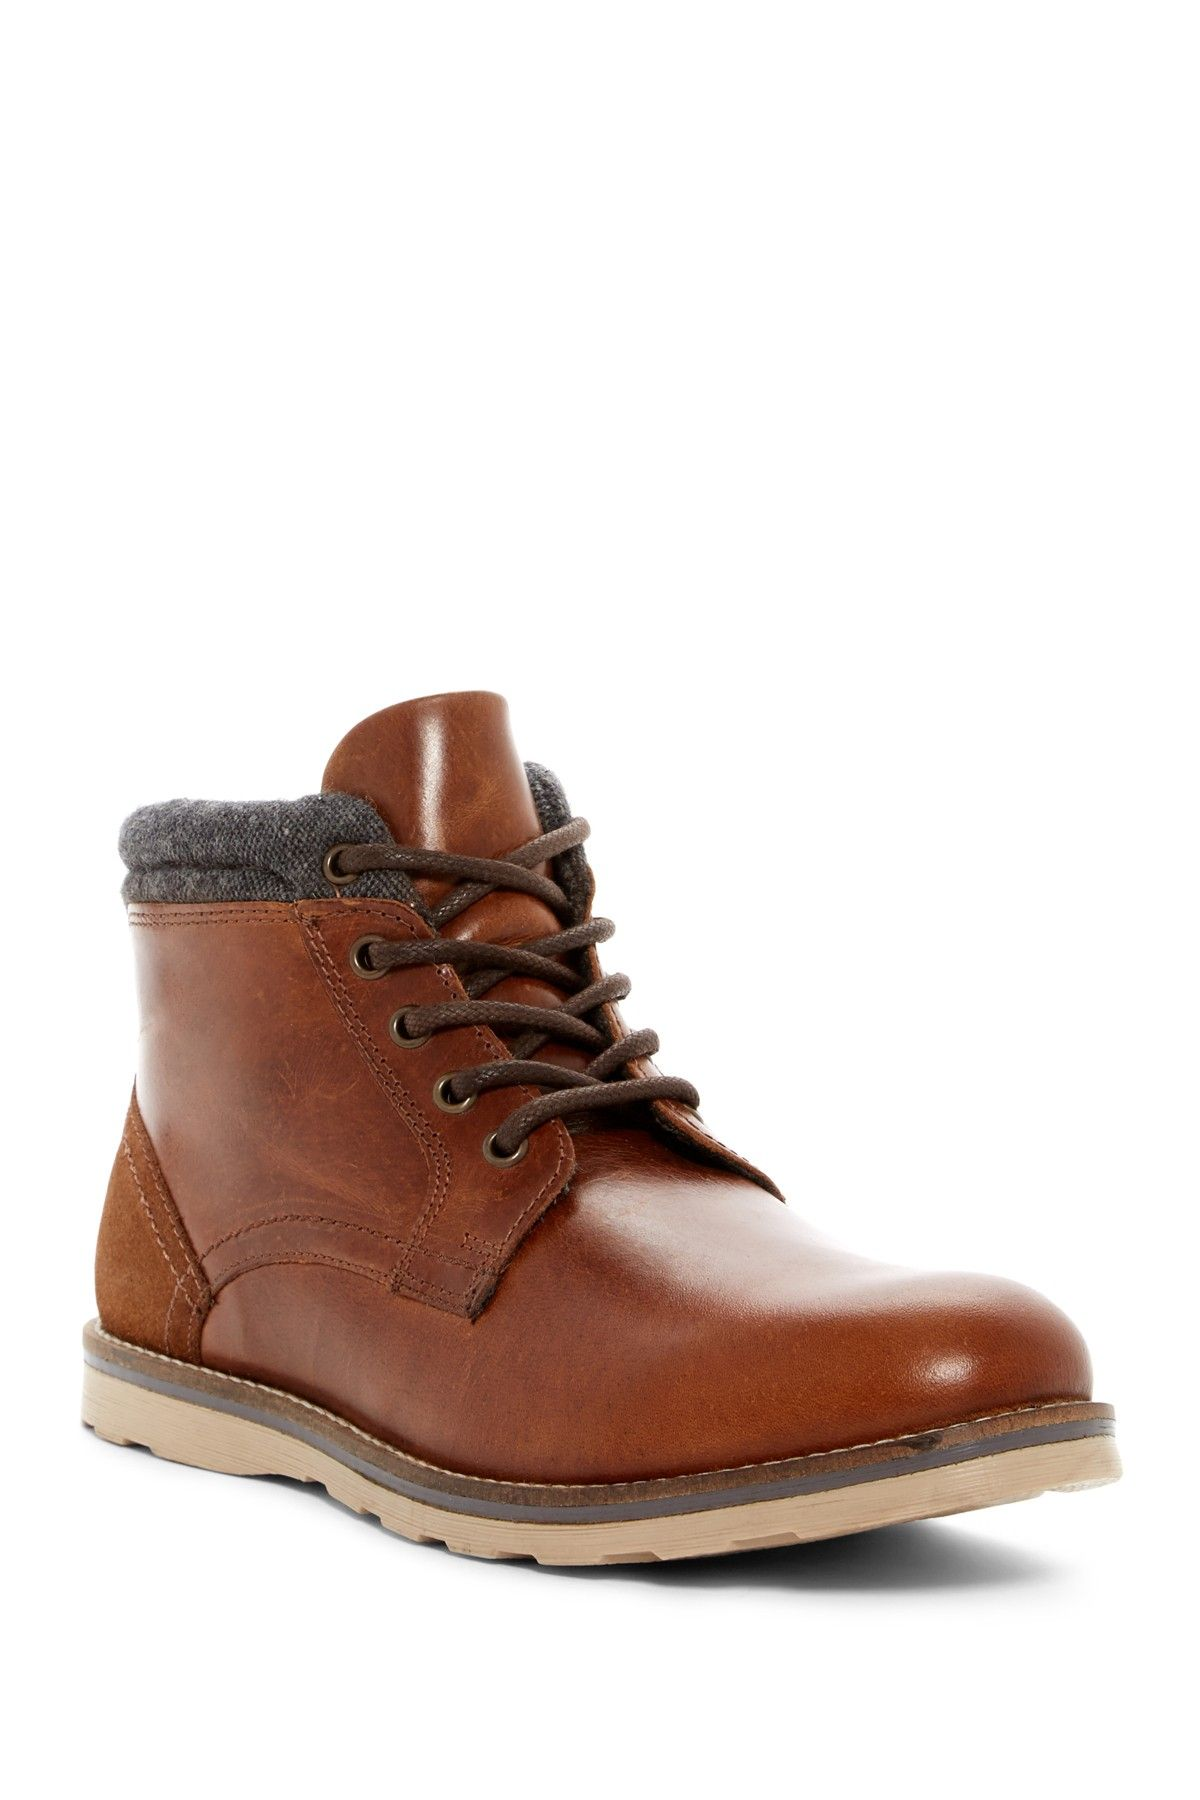 97880640f00 Geoff Leather   Wool Boot by Crevo on  nordstrom rack 60